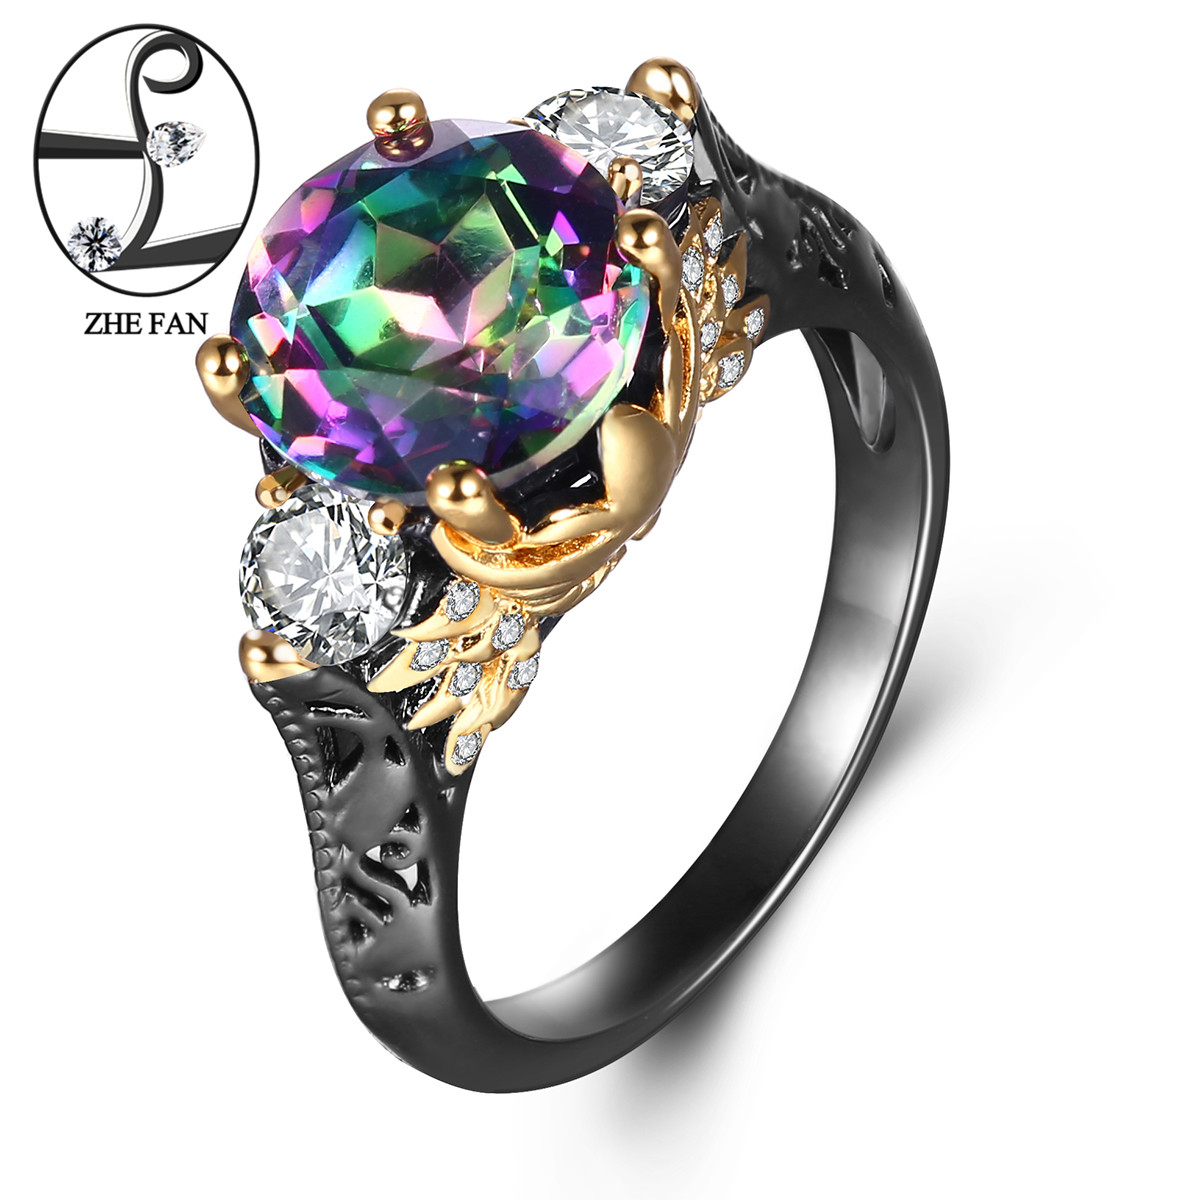 ZHE FAN Top Quality Vintage Ring Rainbow Synthetic Quartz Crystal Black Gold Color 2 Tone Plating Ring For Women Valentine's Day kcchstar gold plating zinc alloy crystal finger ring for women golden transparent us size 8